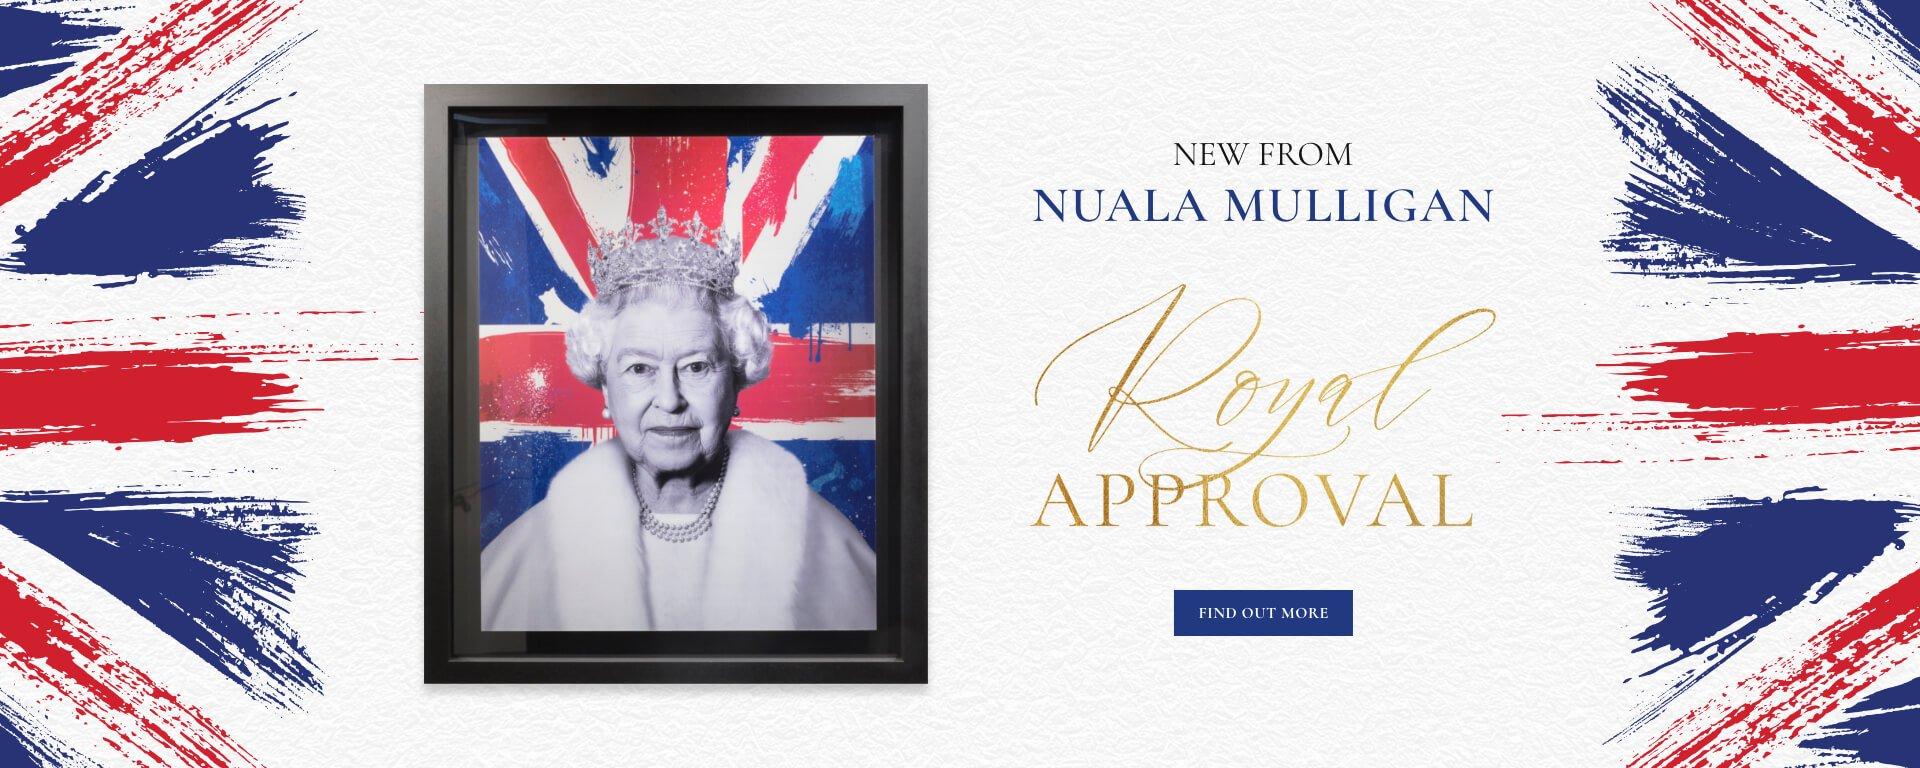 A 'Royal Approval' from Nuala Mulligan